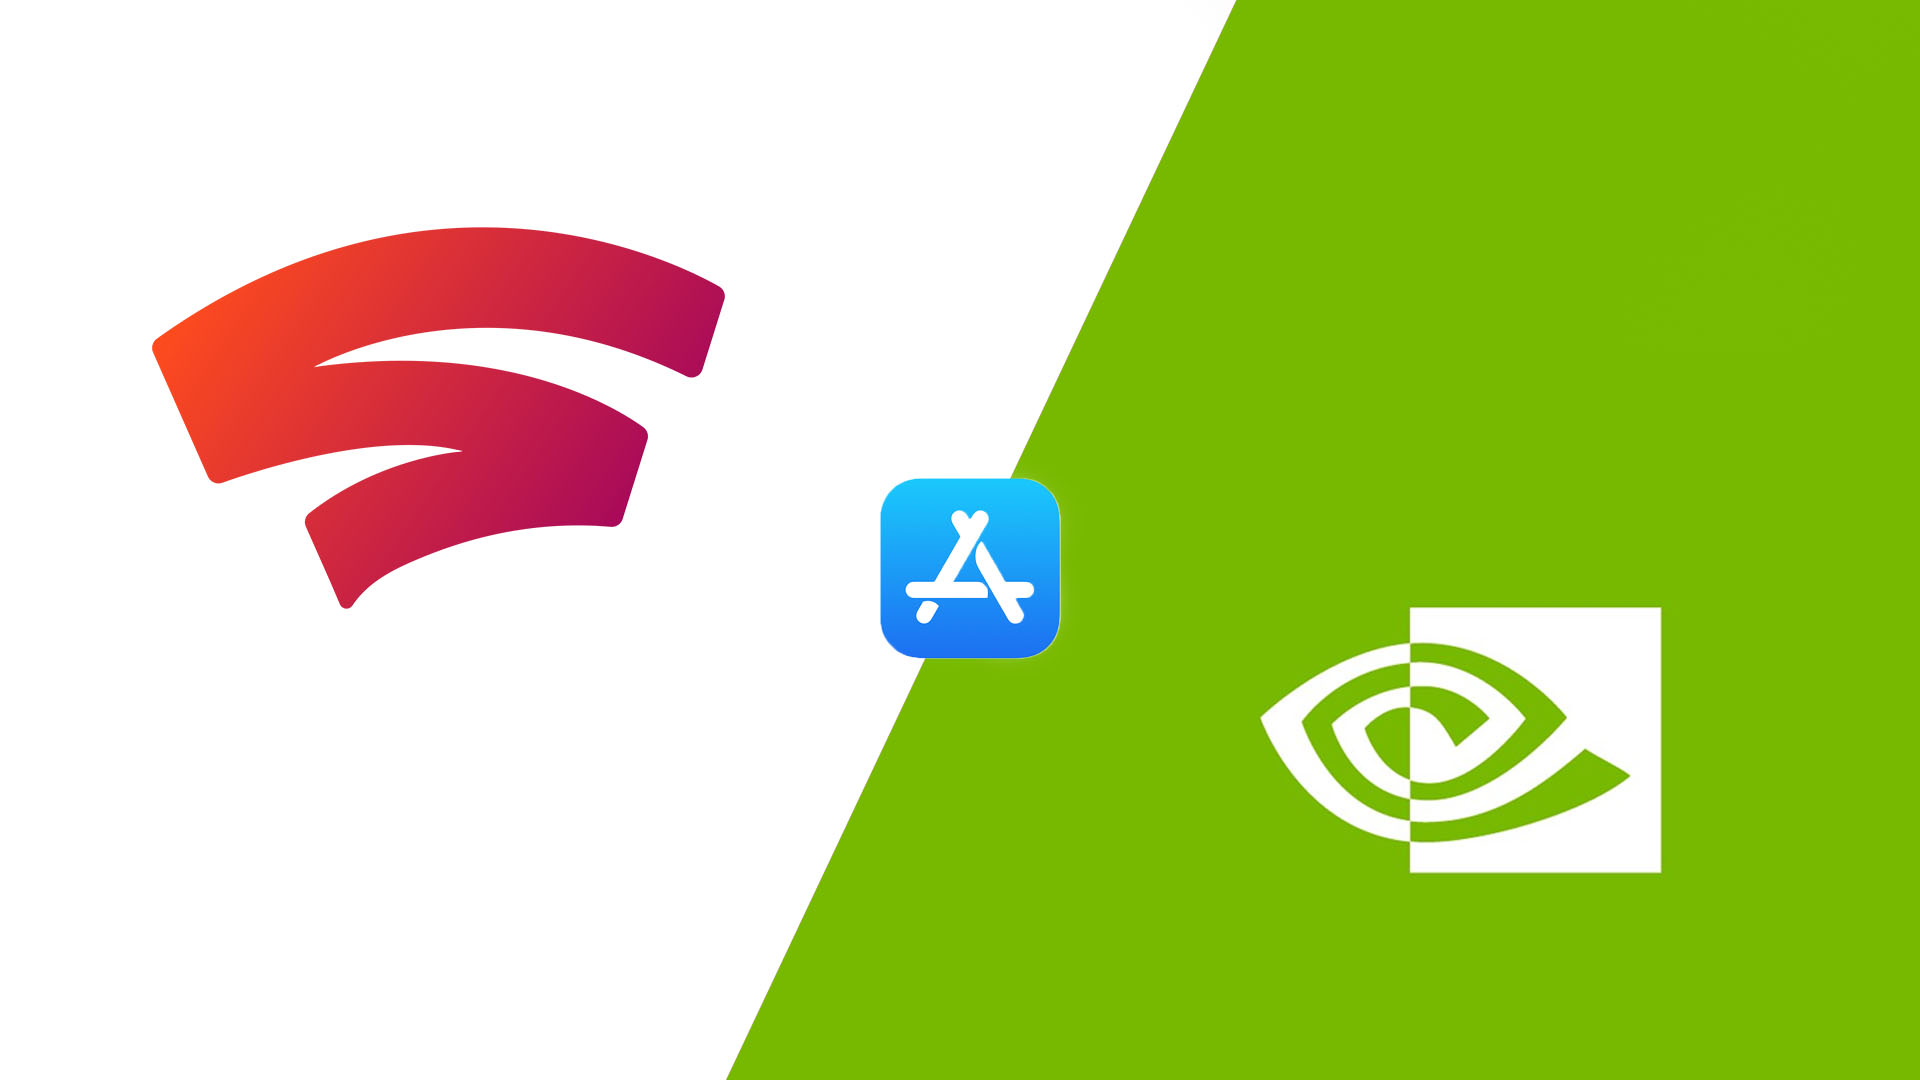 A testament of change – Stadia and GeForce NOW both bypass Apple's store with web apps